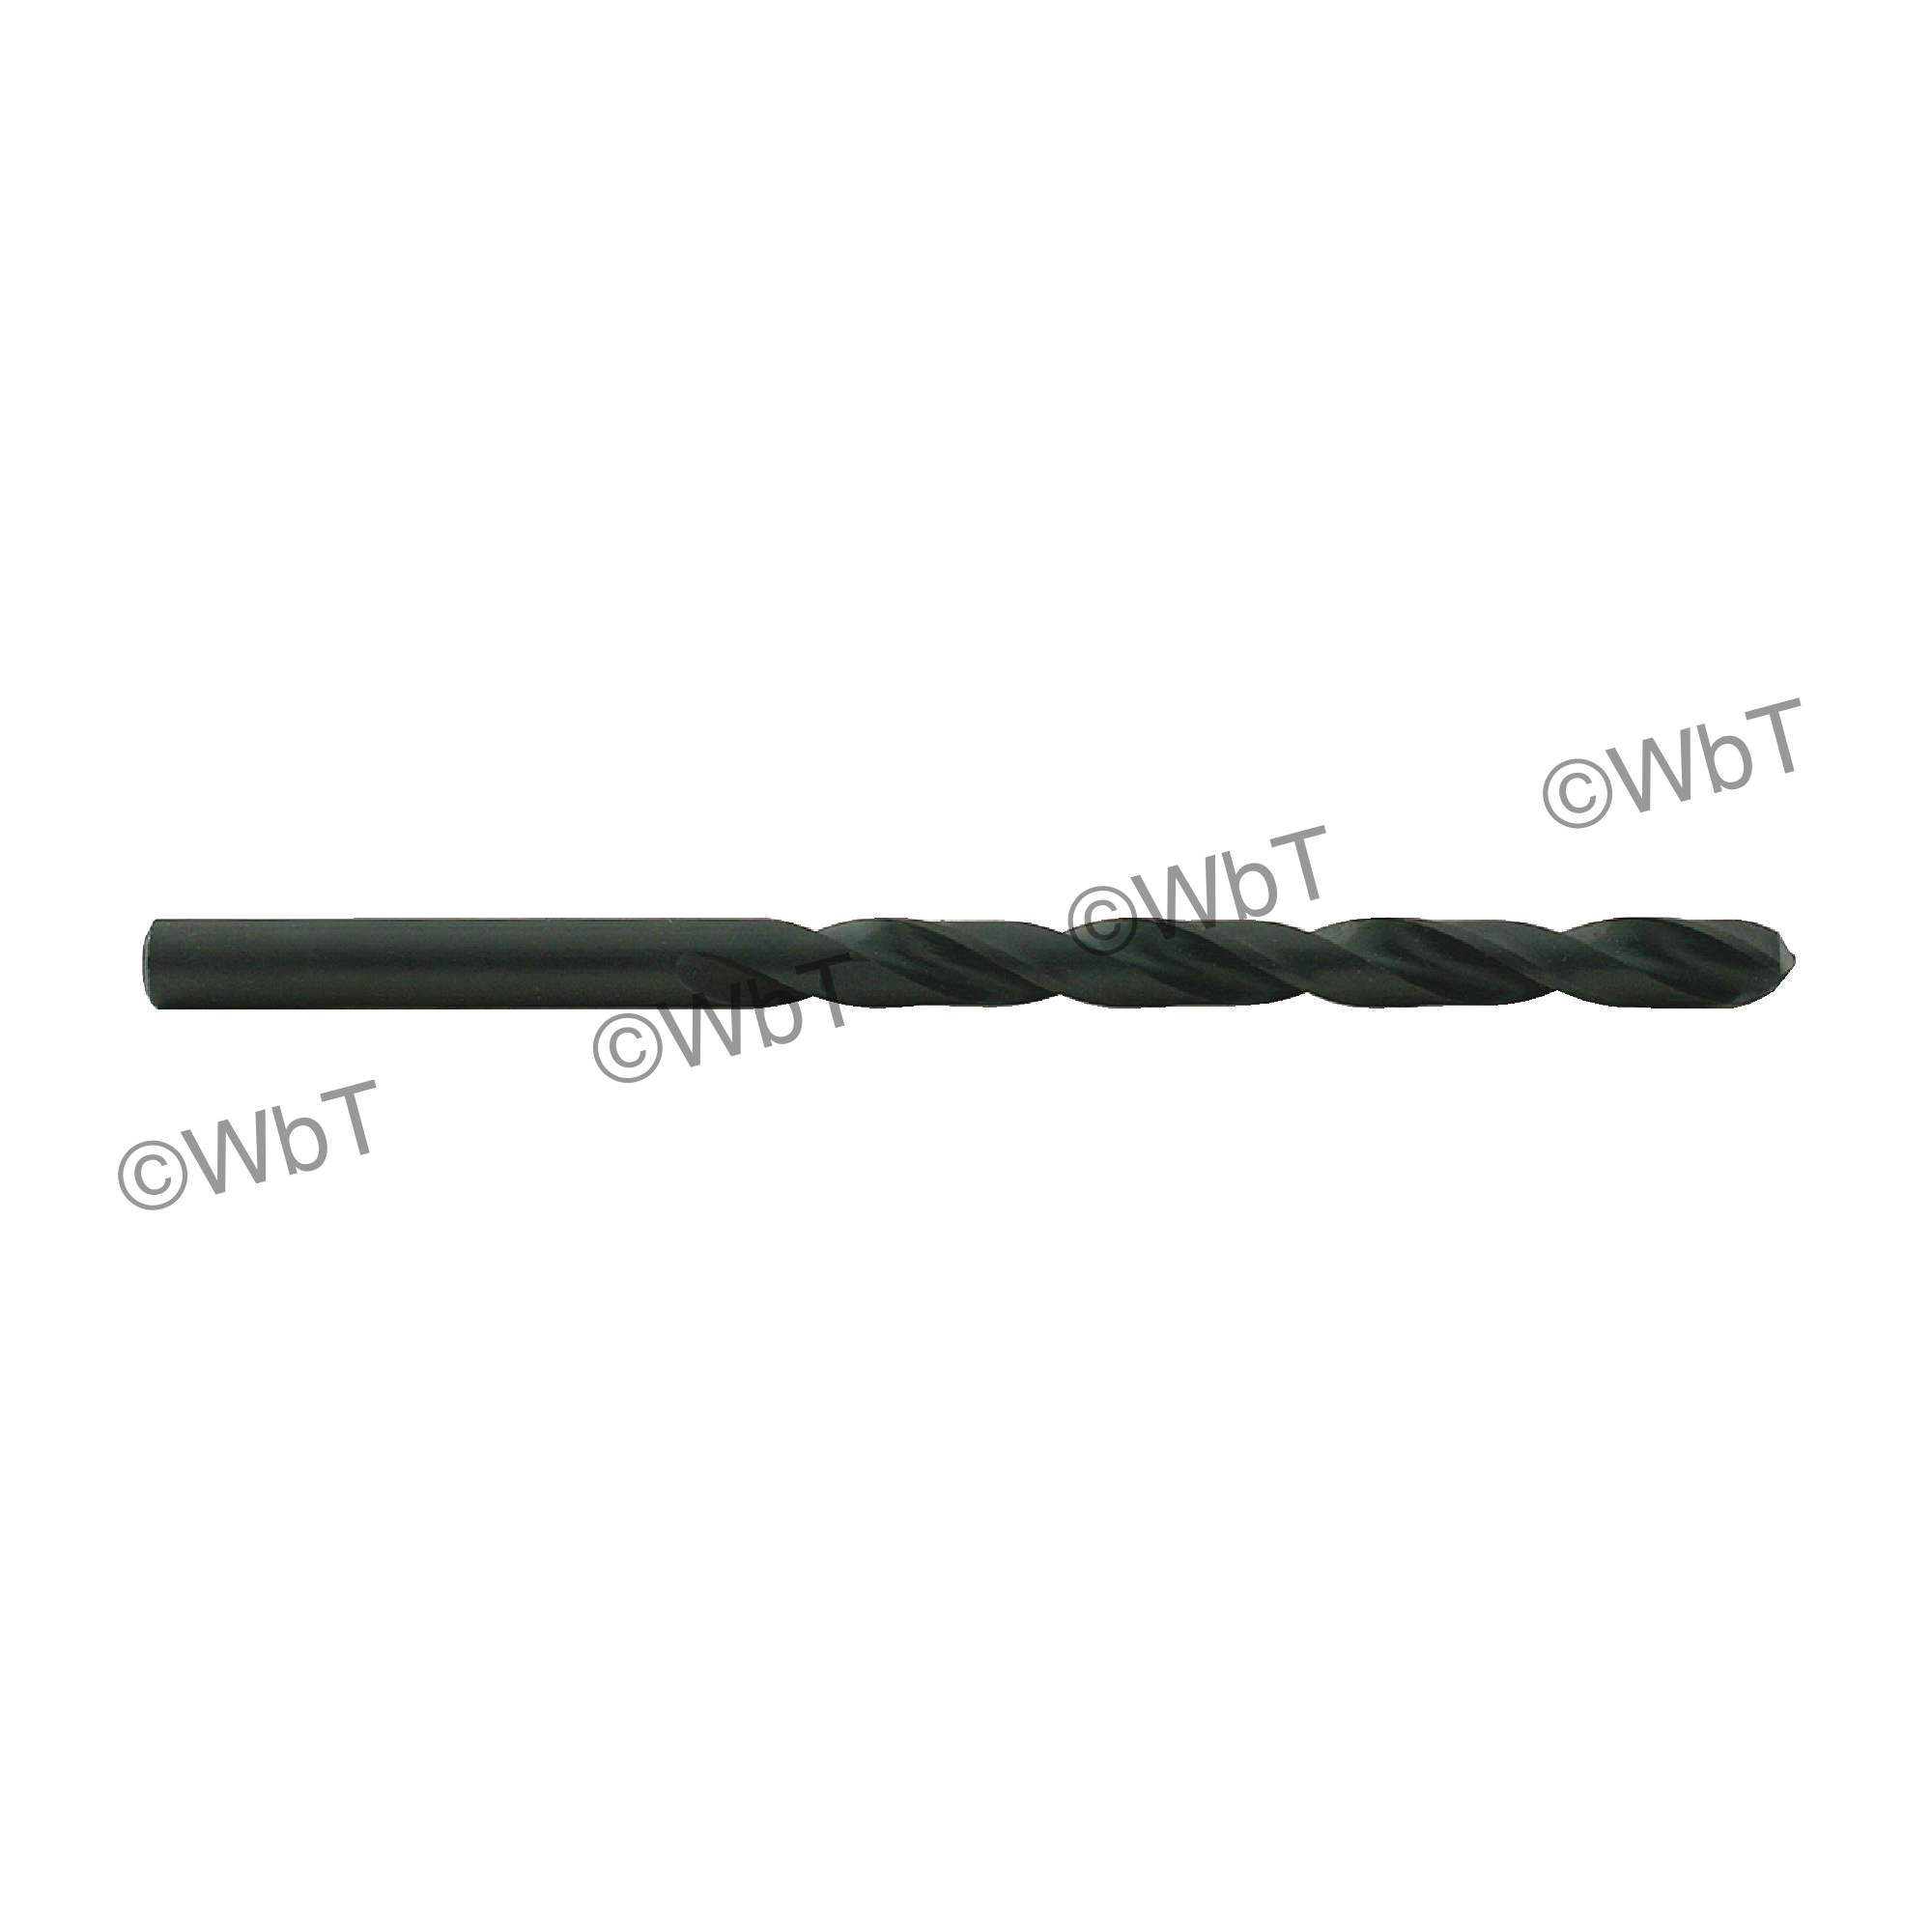 TTC 01-002-024 A2 Series General Purpose Heavy Duty Surface Treated Jobber Length Drill Bit, #24 Drill - Wire, 0.152 in Drill - Decimal Inch, 118 deg Point, HSS, Black Oxide